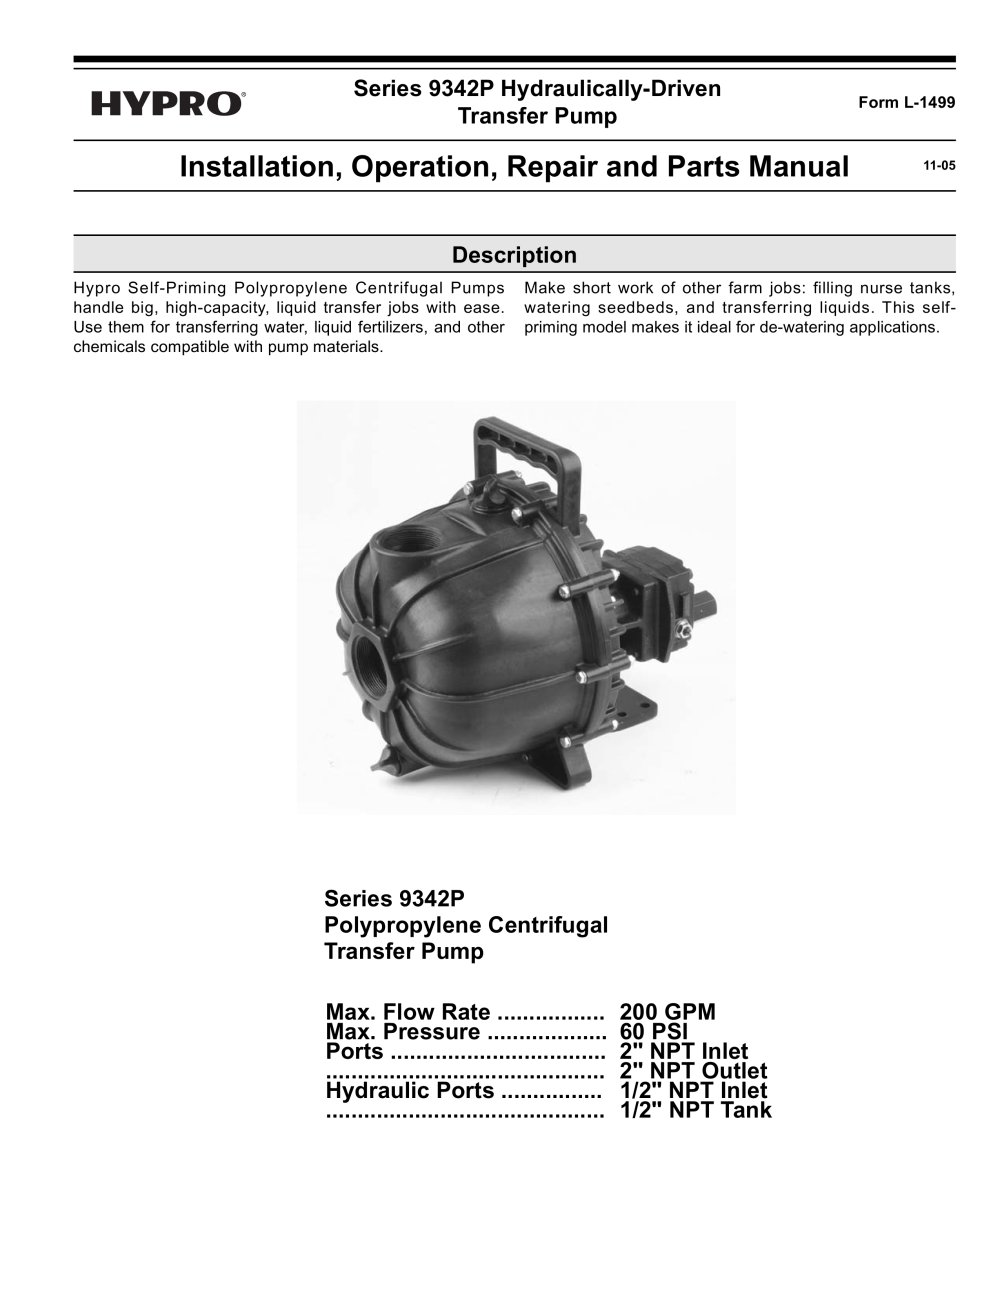 Series 9342P Hydraulic Driven Poly Transfer Pump Operation, Installation & Parts  Manual - 1 / 12 Pages